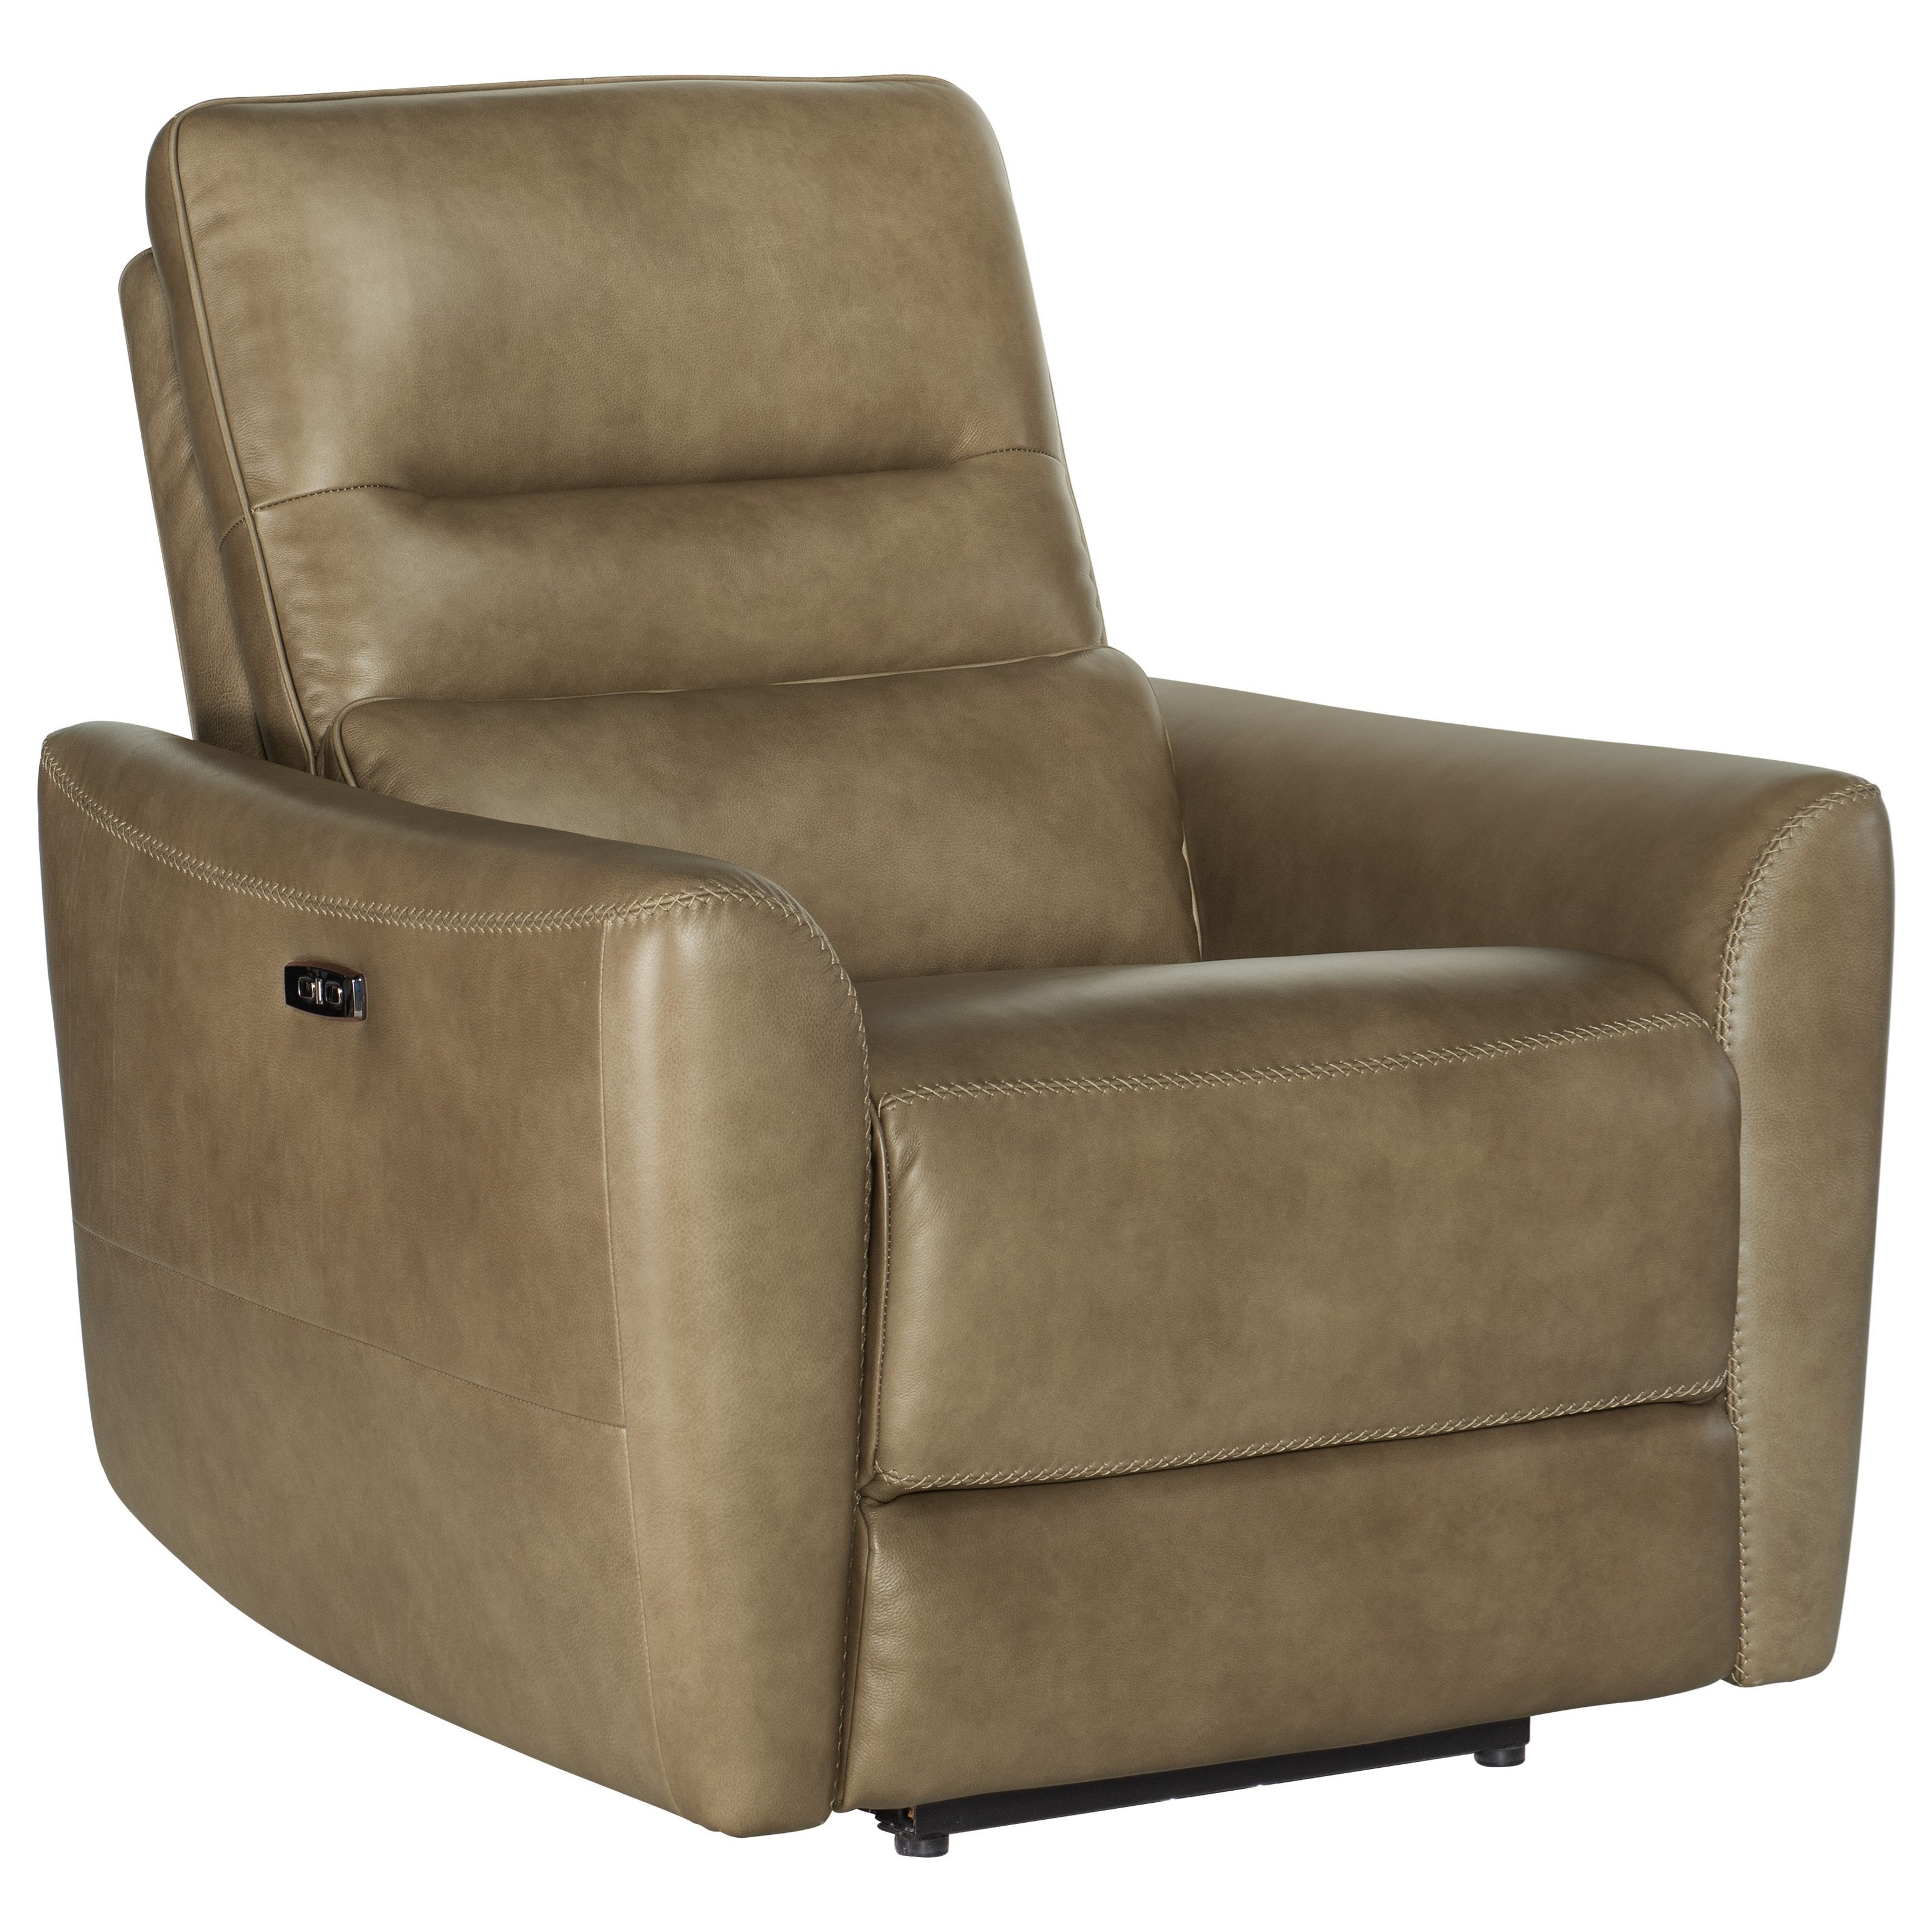 Reclining Chairs Zero Gravity Power Recliner w/ Power HR by Hooker Furniture at Zak's Home